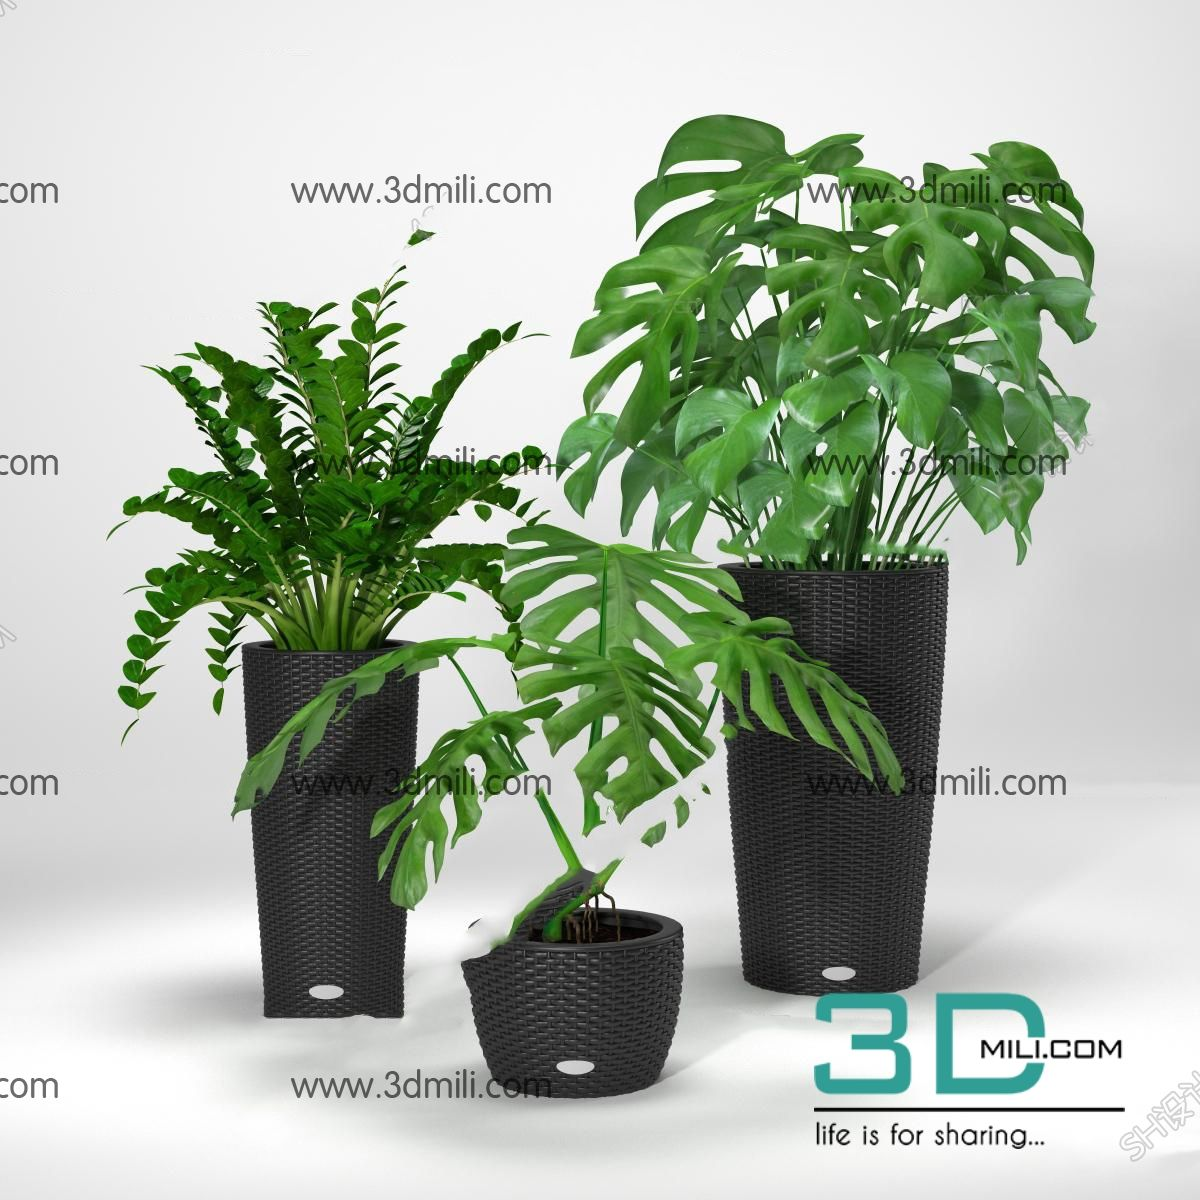 401  Plant 3dsmax Model Free Download - 3D Mili - Download 3D Model